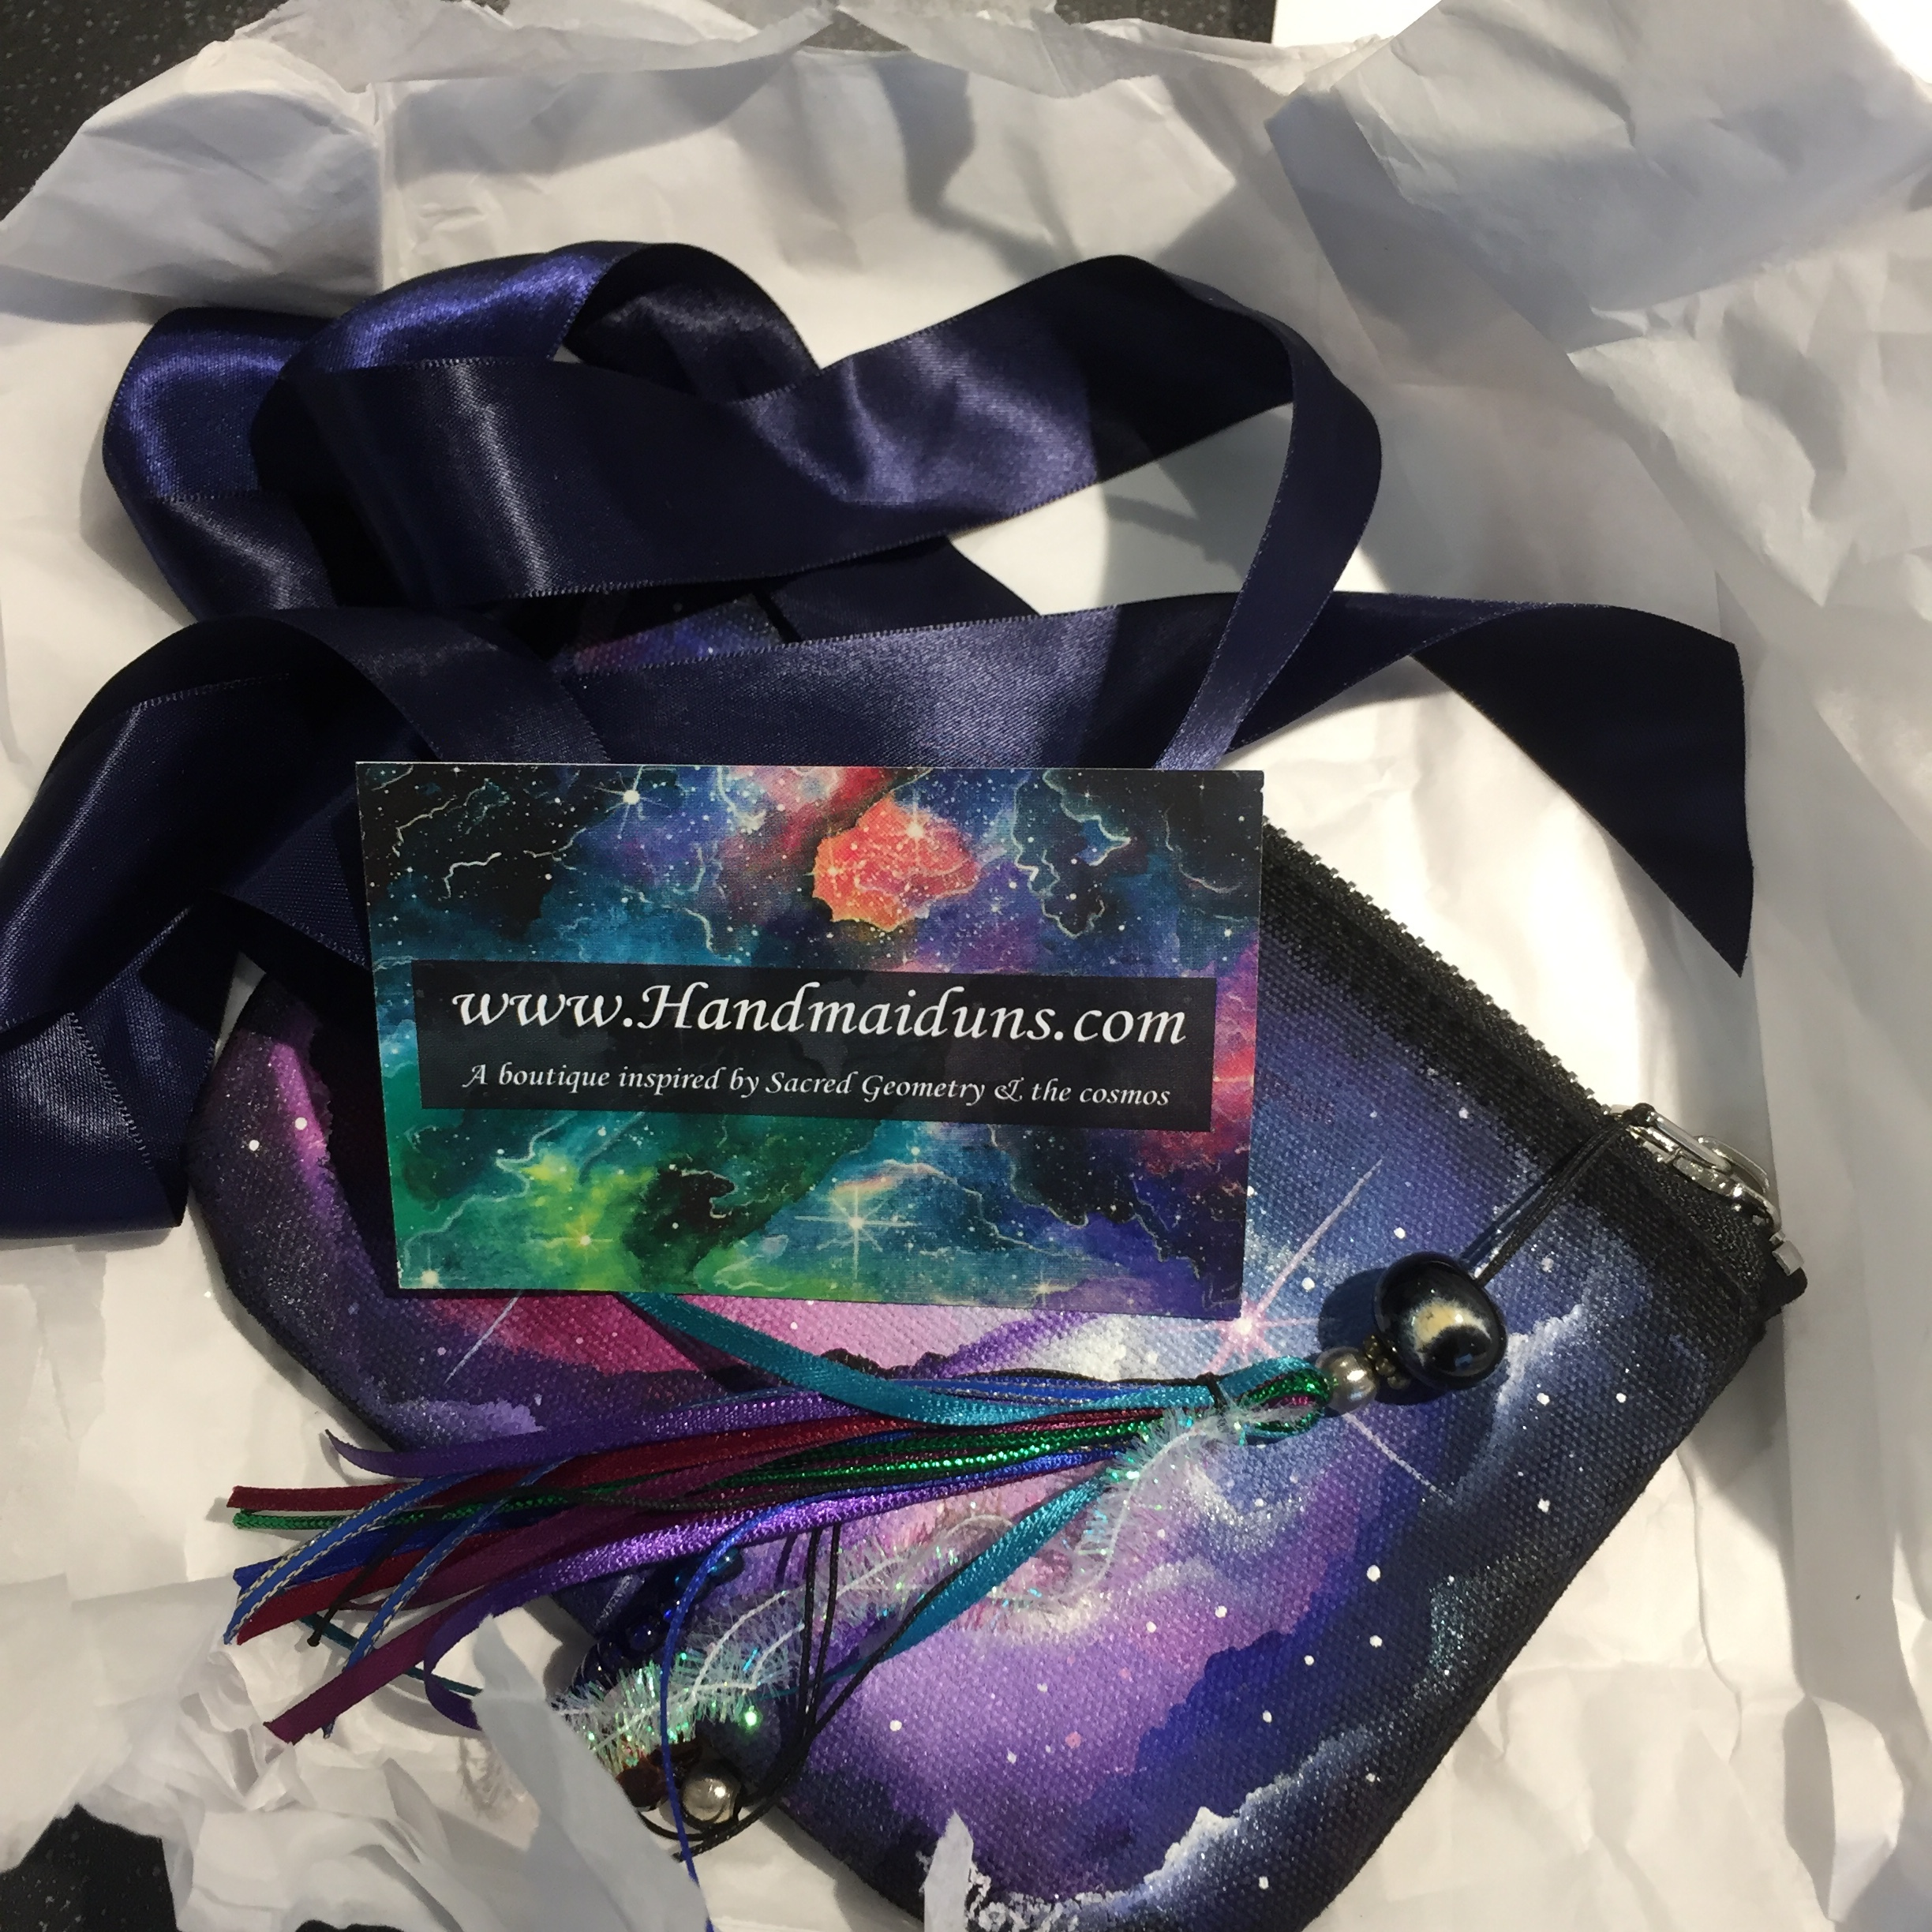 What a beautifully packaged parcel! I was in such a hurry to open it that I didn't snap it first - trust me, it was gorgeous even before this point!